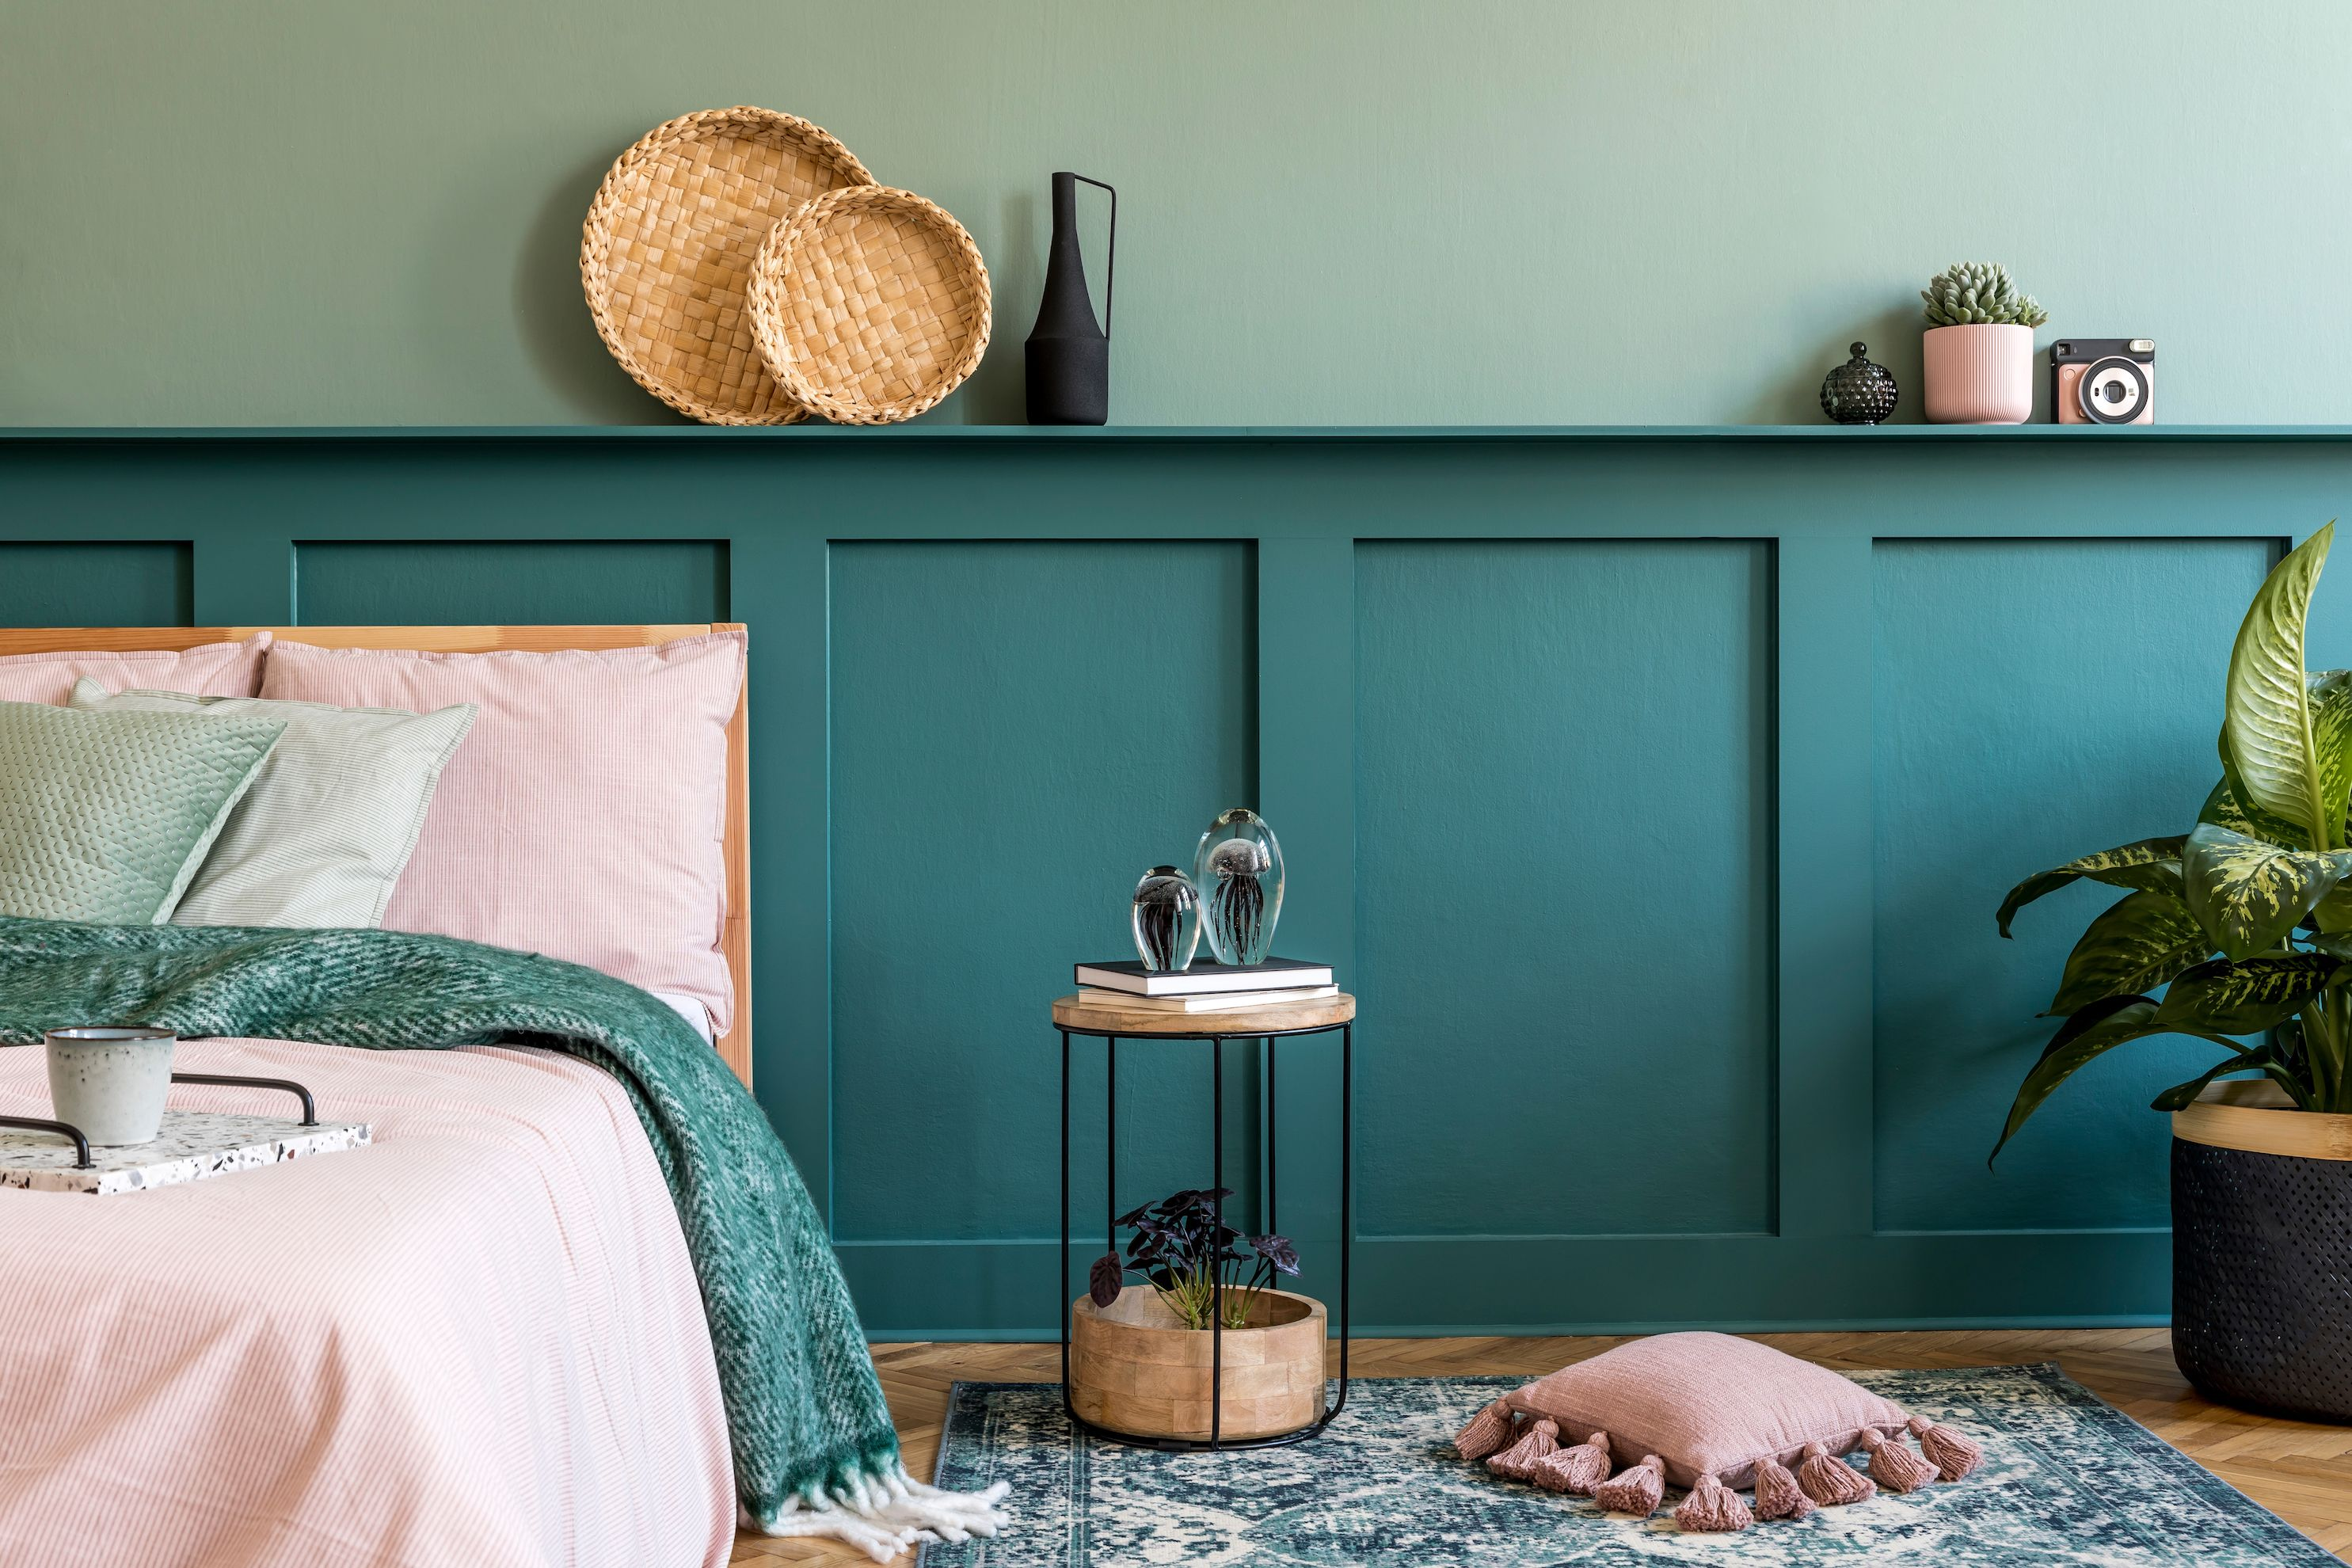 How to panel a wall: DIY wall panelling in 7 simple steps